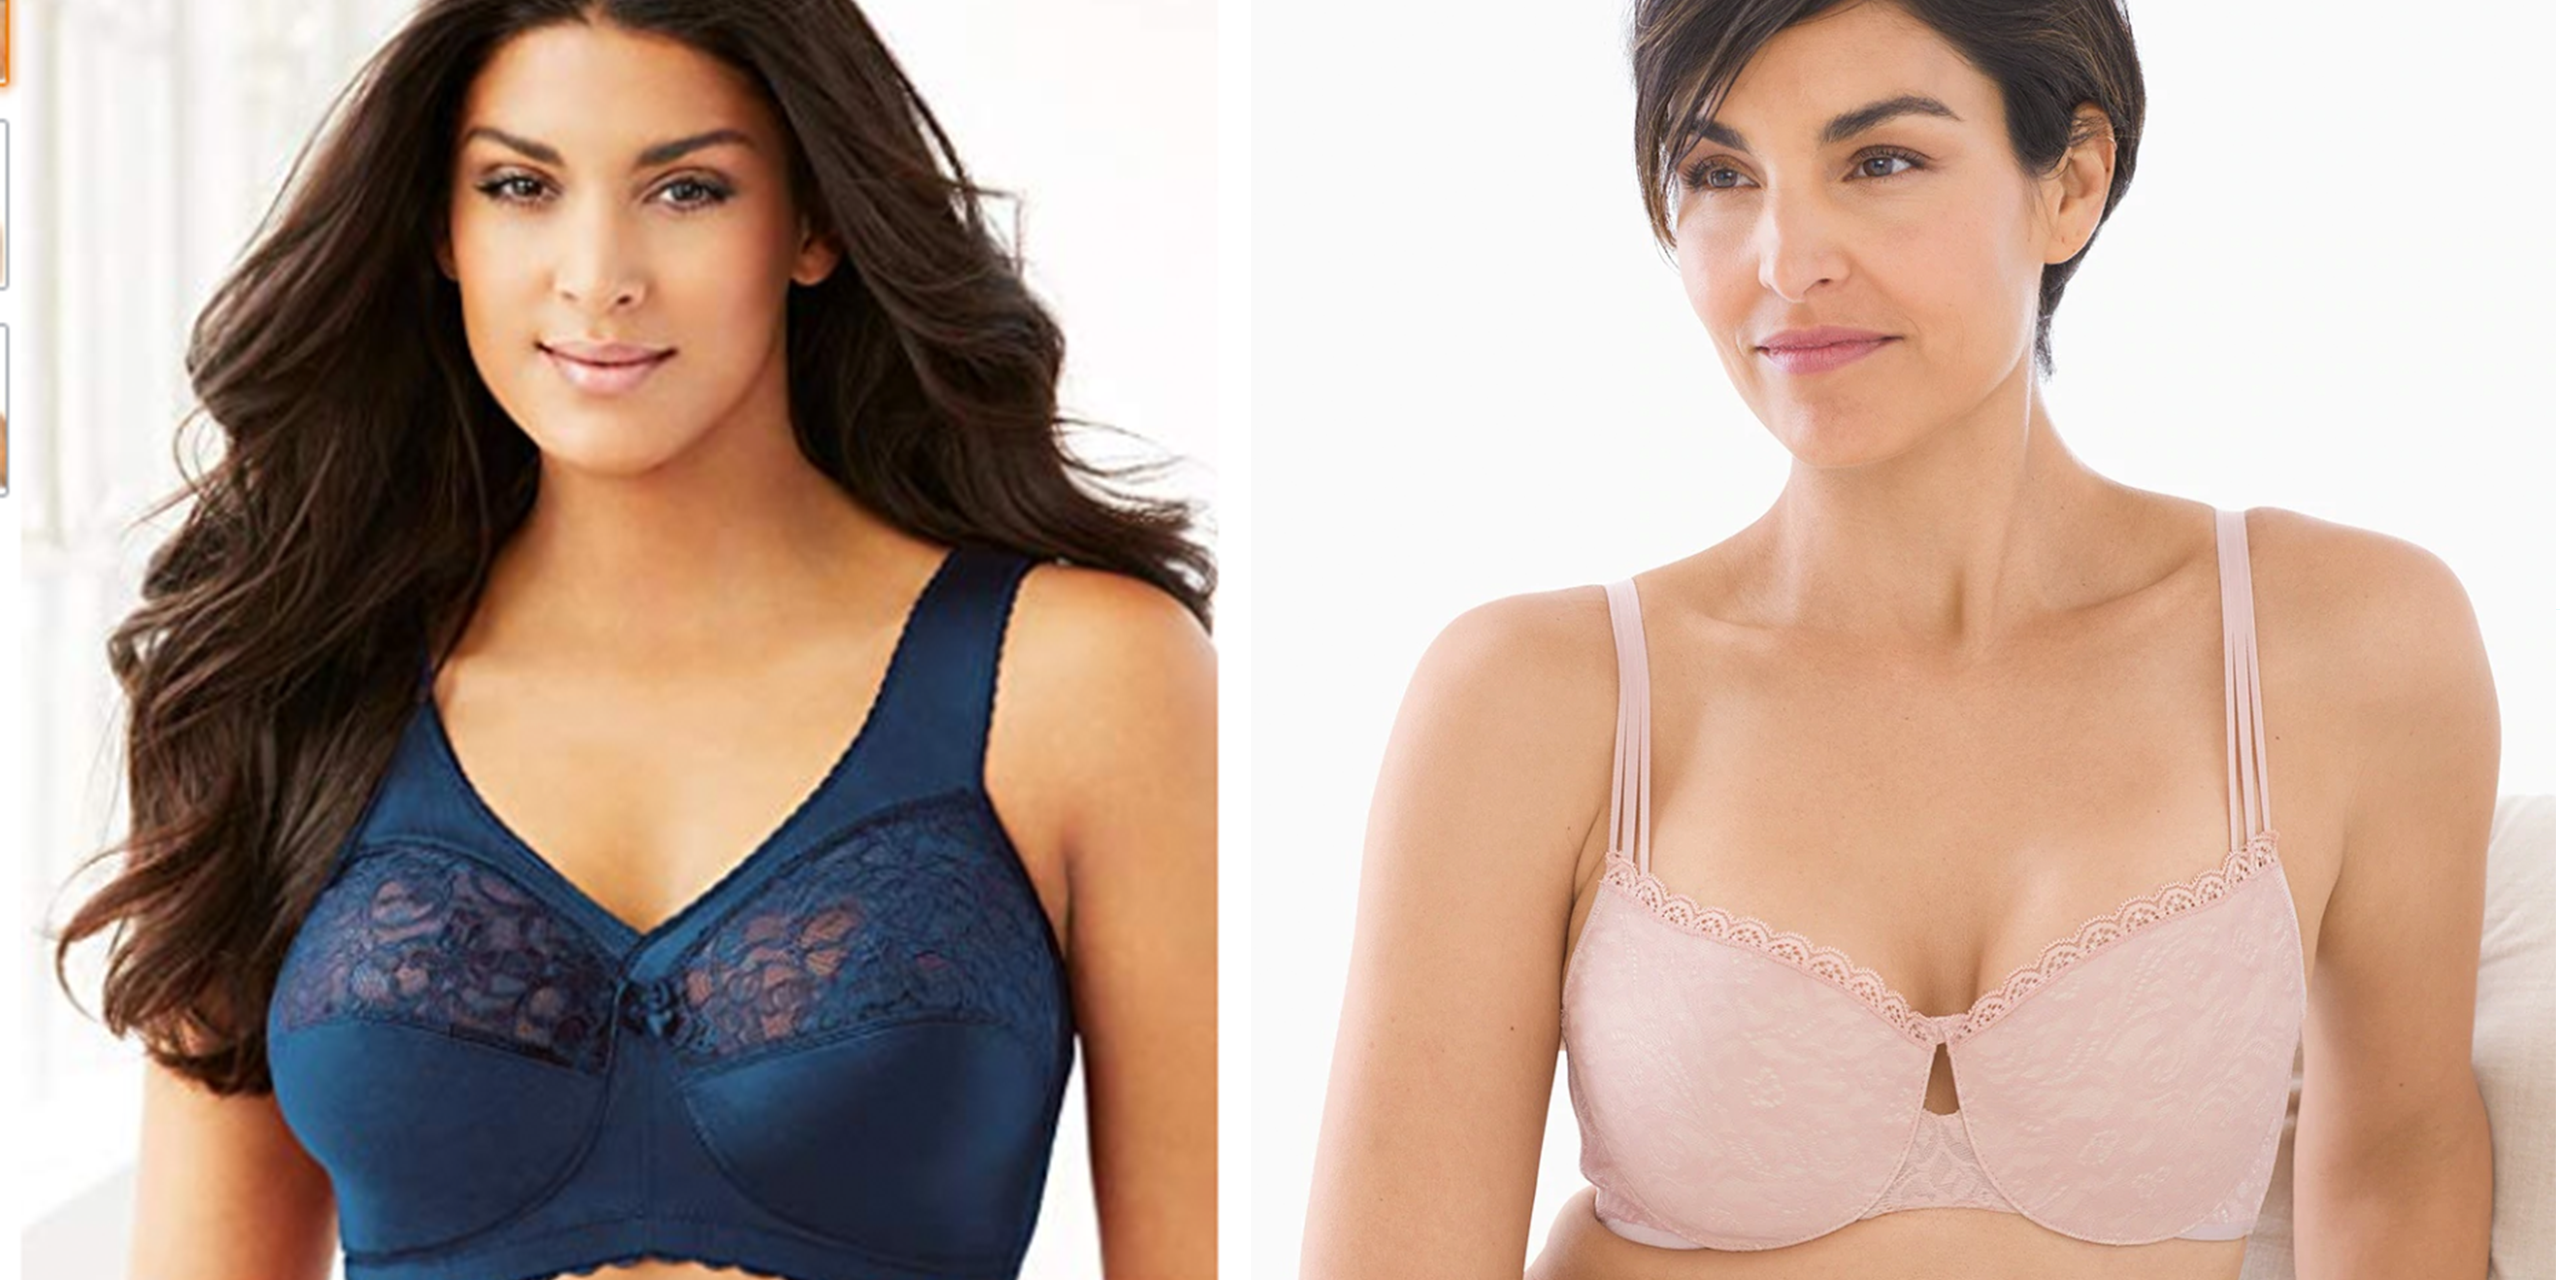 11 Most Comfortable Bras 2019 - Best Bra for Support and Lift